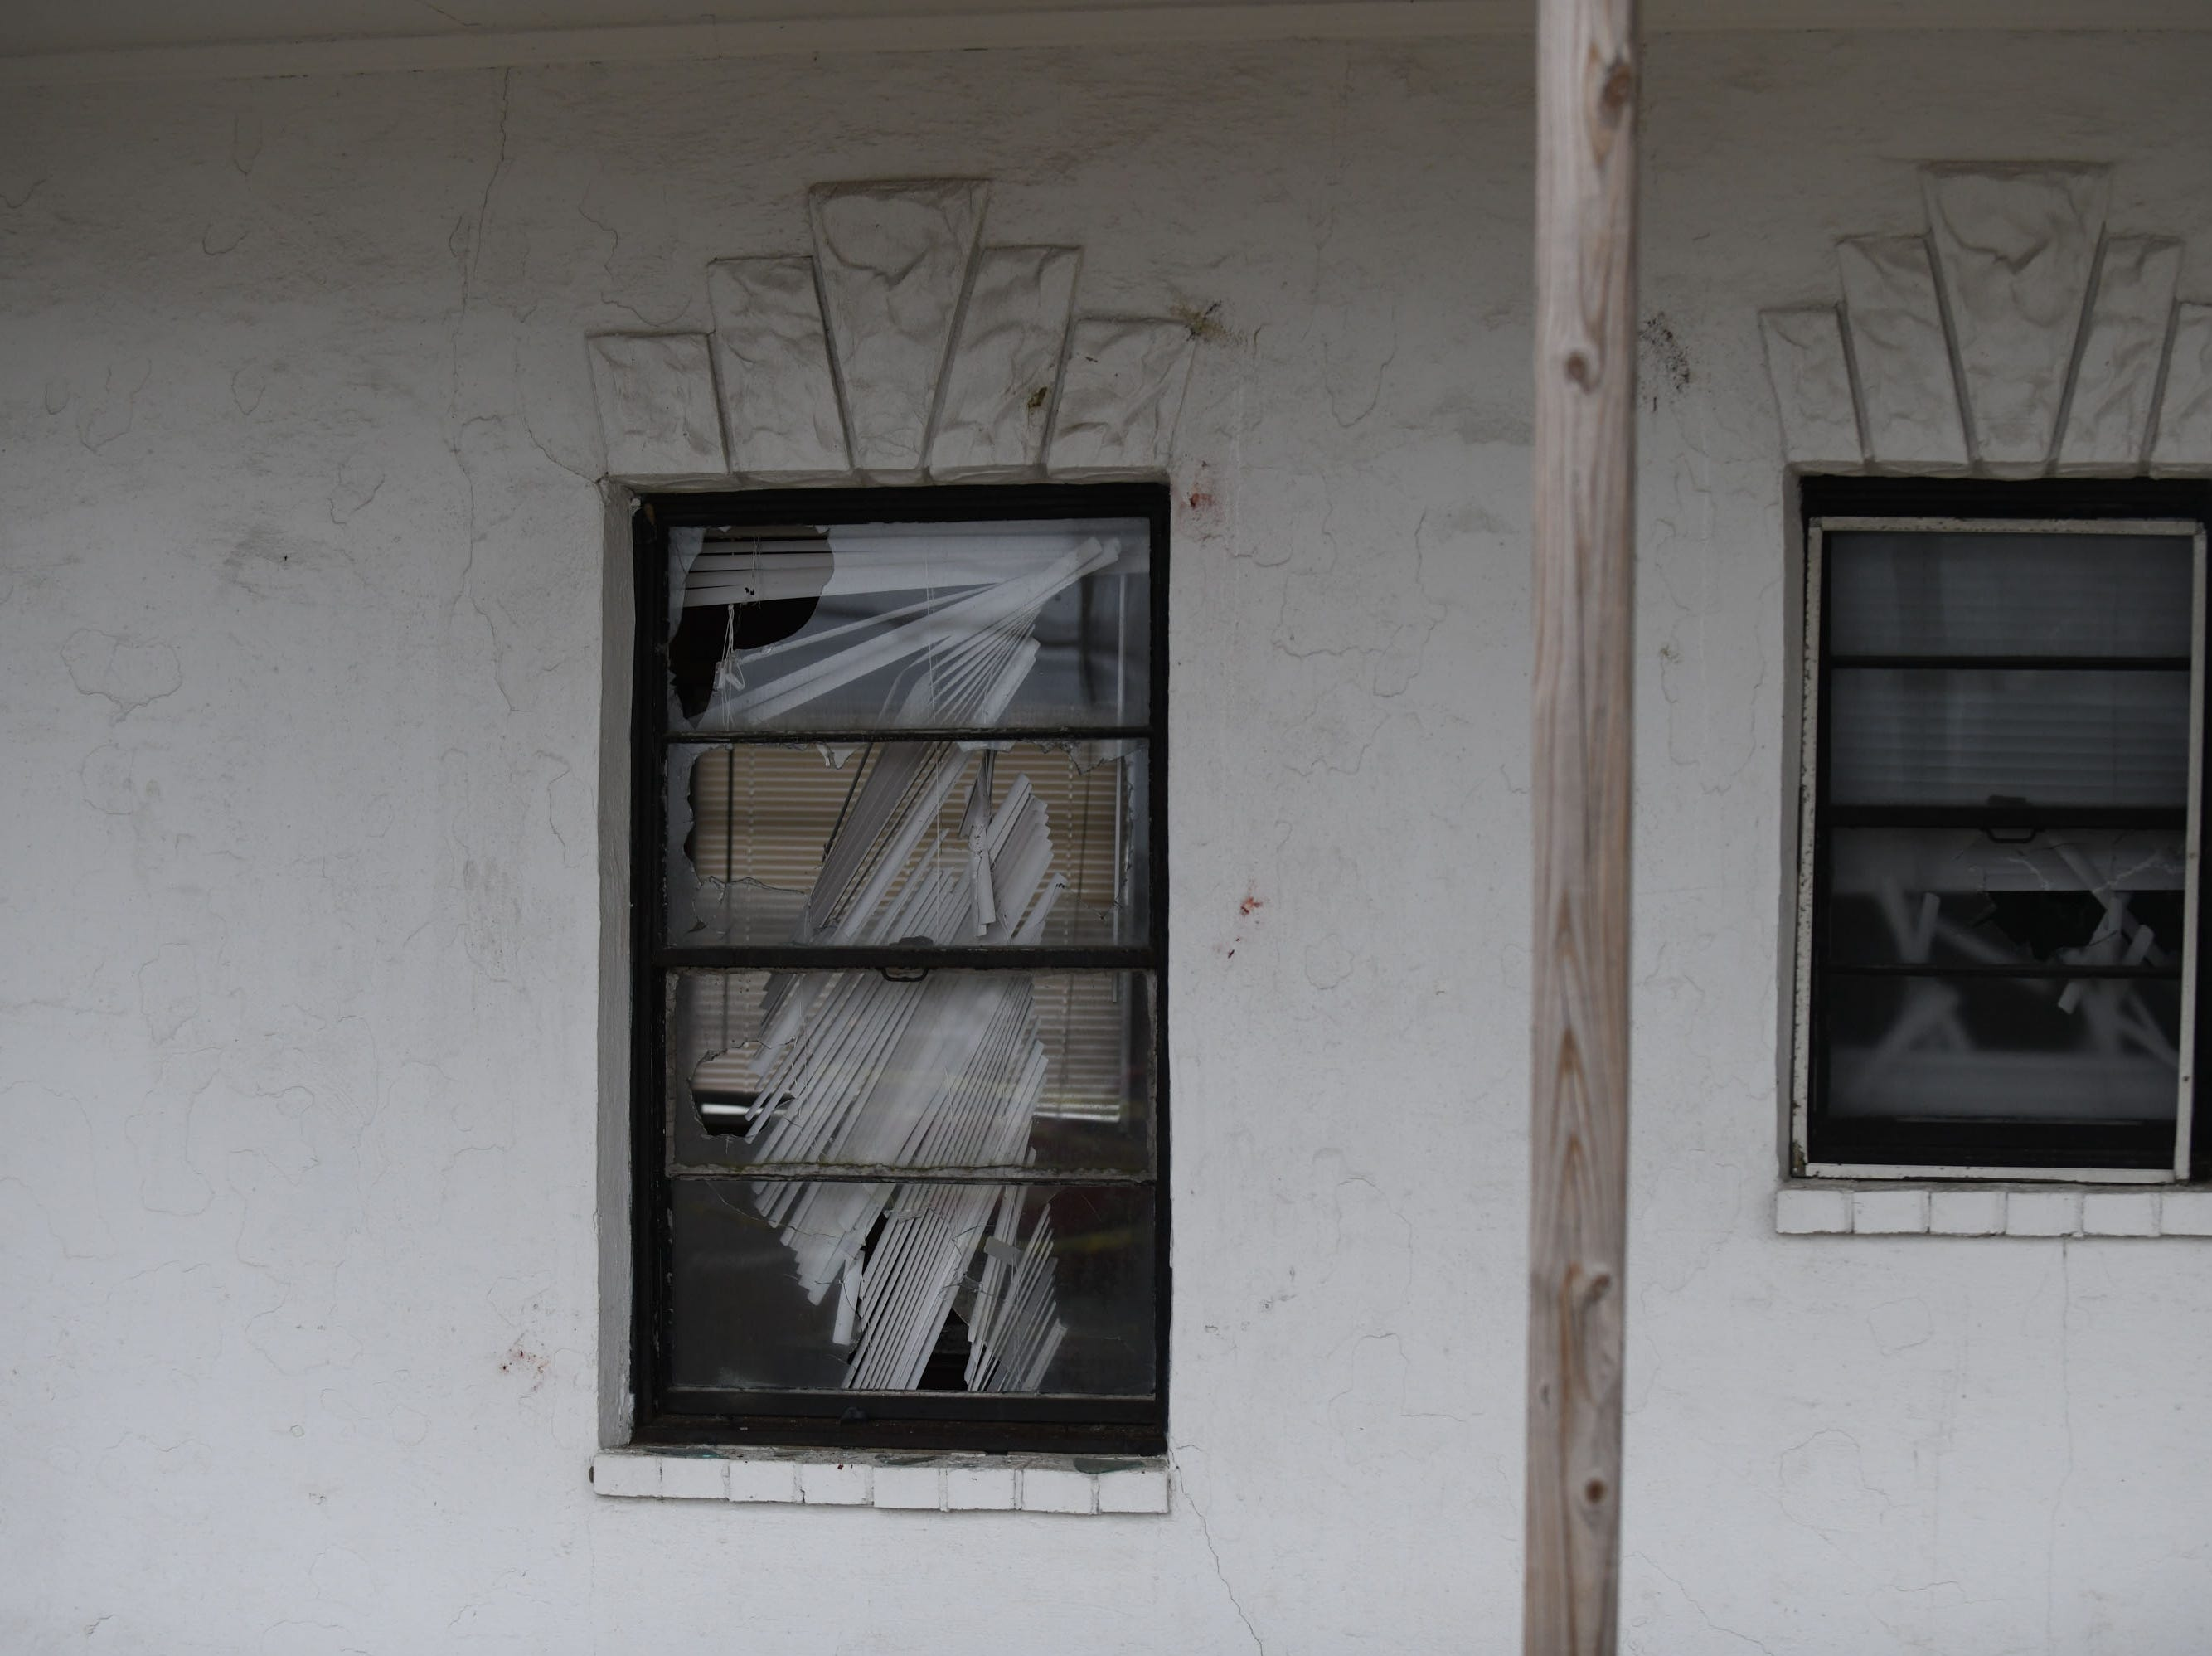 """The community said good bye to the Sands Motel located in Fenwick Island, Del. on Thursday, Dec. 20, 2018. During a """"Demo Party"""" held by the owners of the property. Anyone could come and throw rocks to help break windows before the demo begins."""